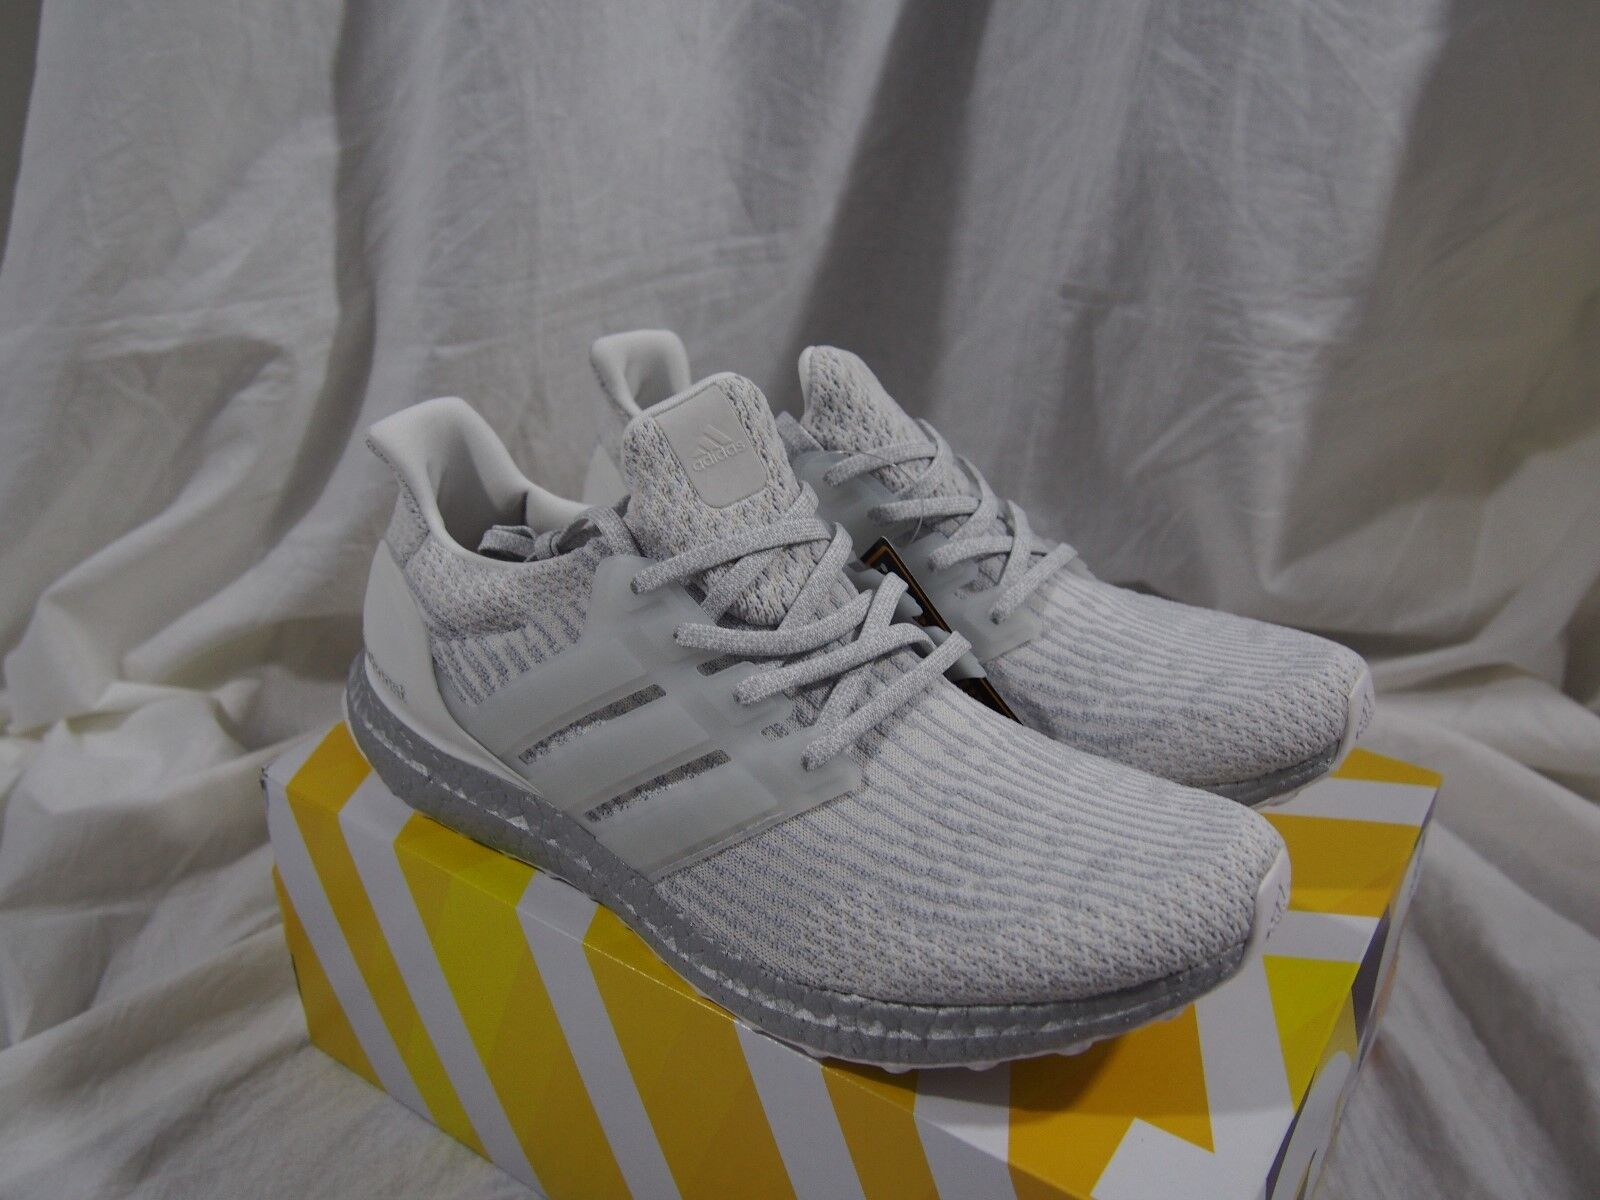 Adidas Ultra Boost 3.0 LTD BA8922 Crystal White   Silver Boost